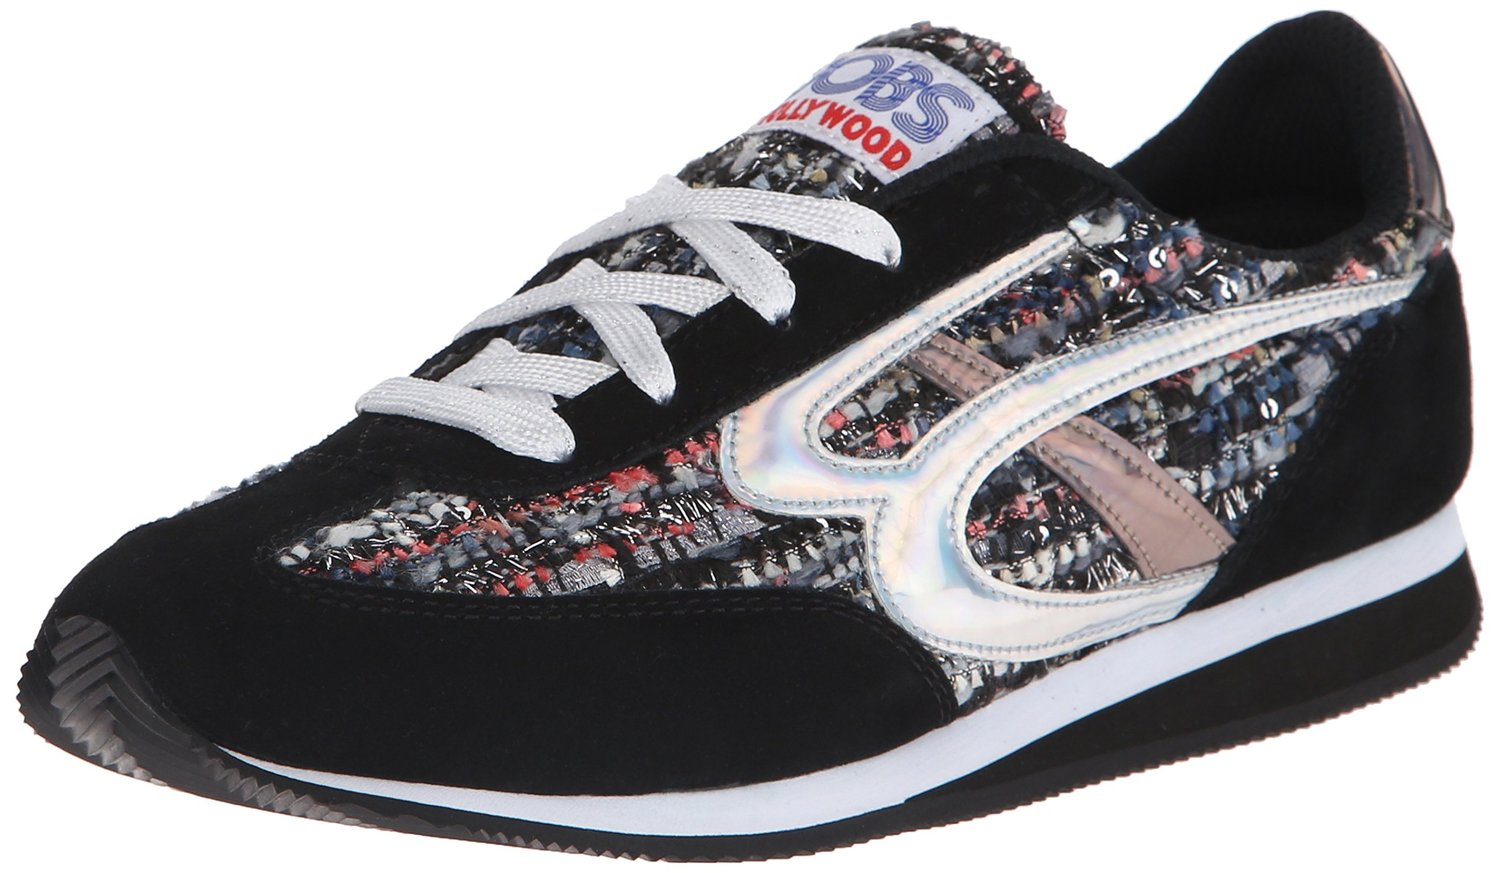 BOBS from Skechers Womens Sunset Fashion Sneaker Retro 80s shoes